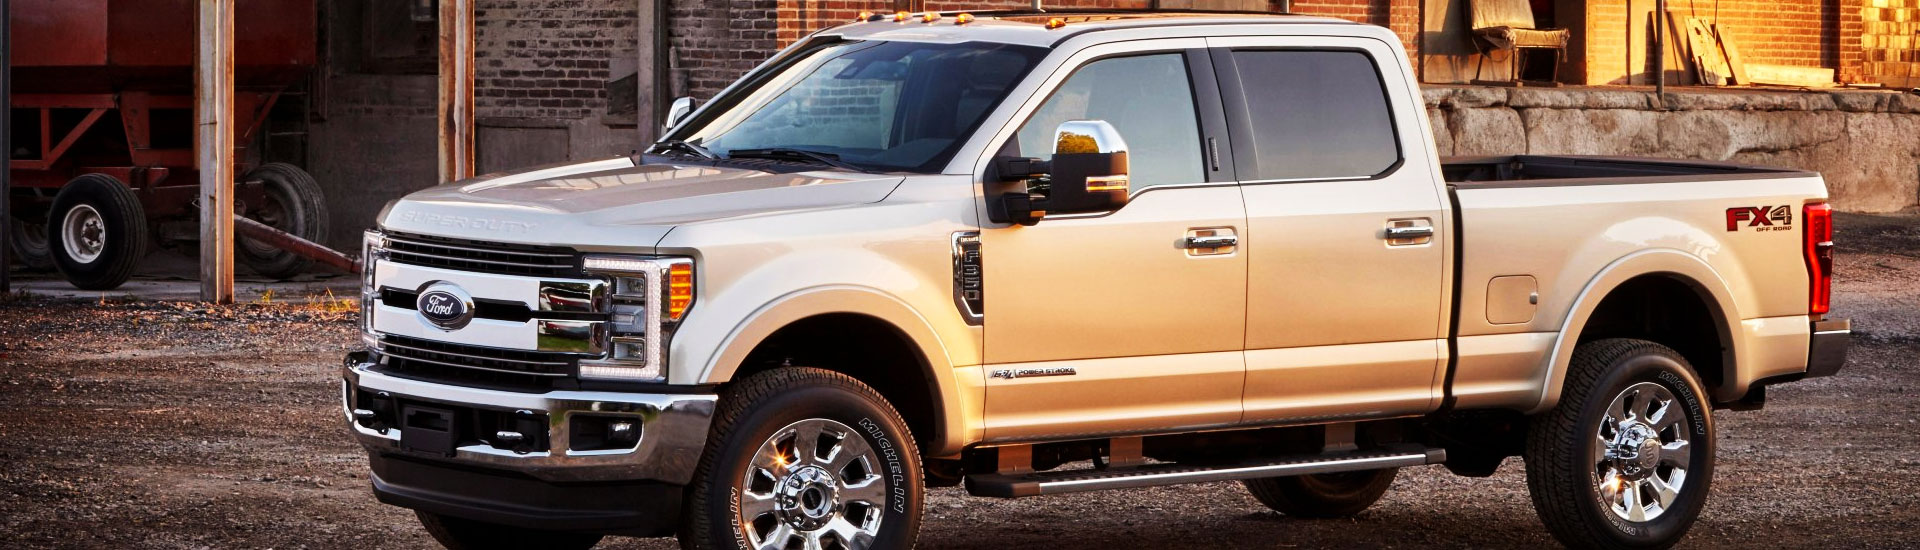 Ford F-350 Pillar Post Trim